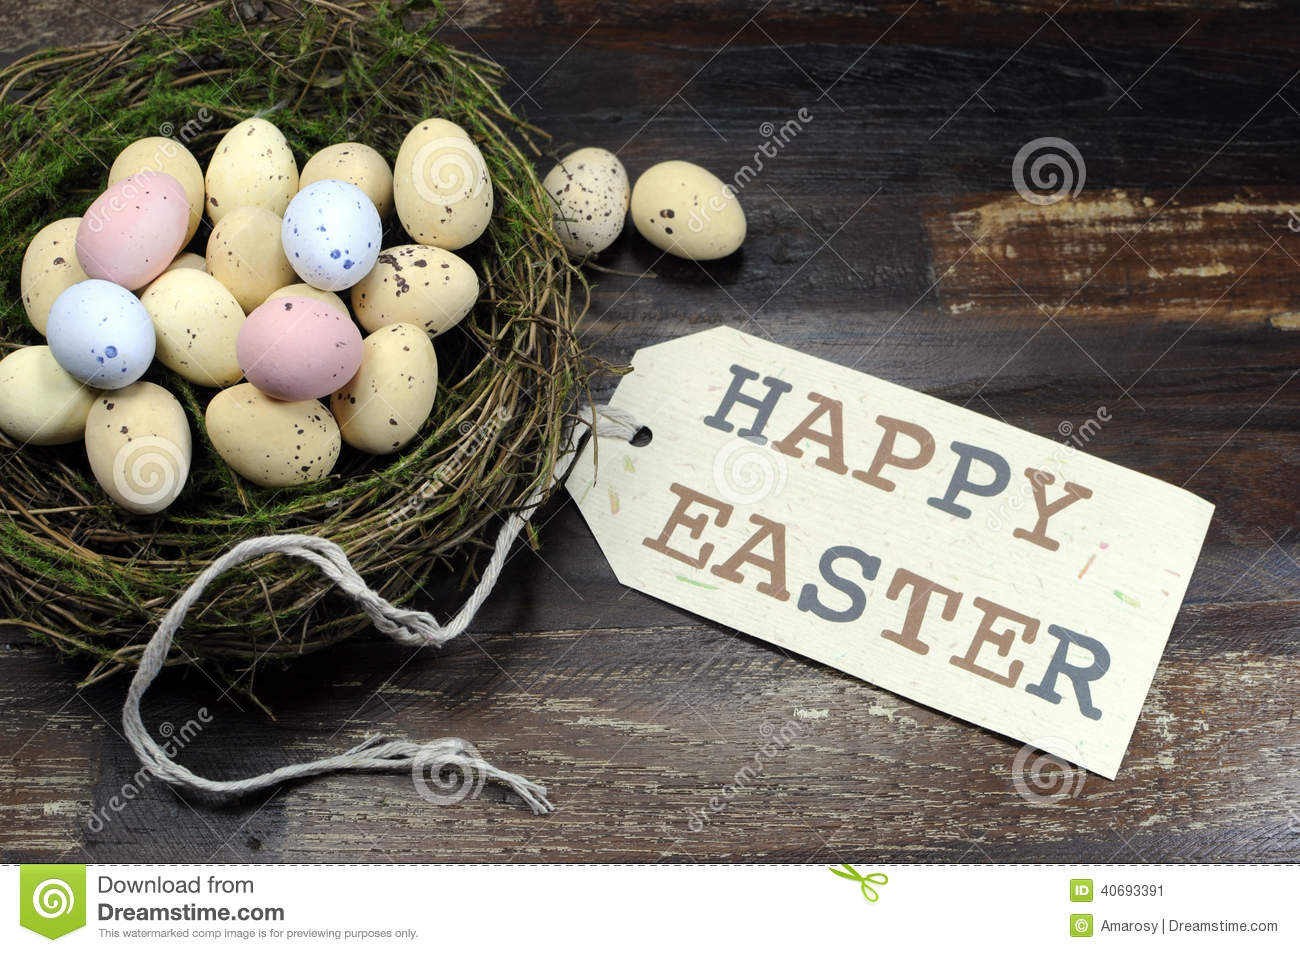 Happy Easter Candy Eggs In Birds Nest On Dark Vintage Recycled Wood With Tag